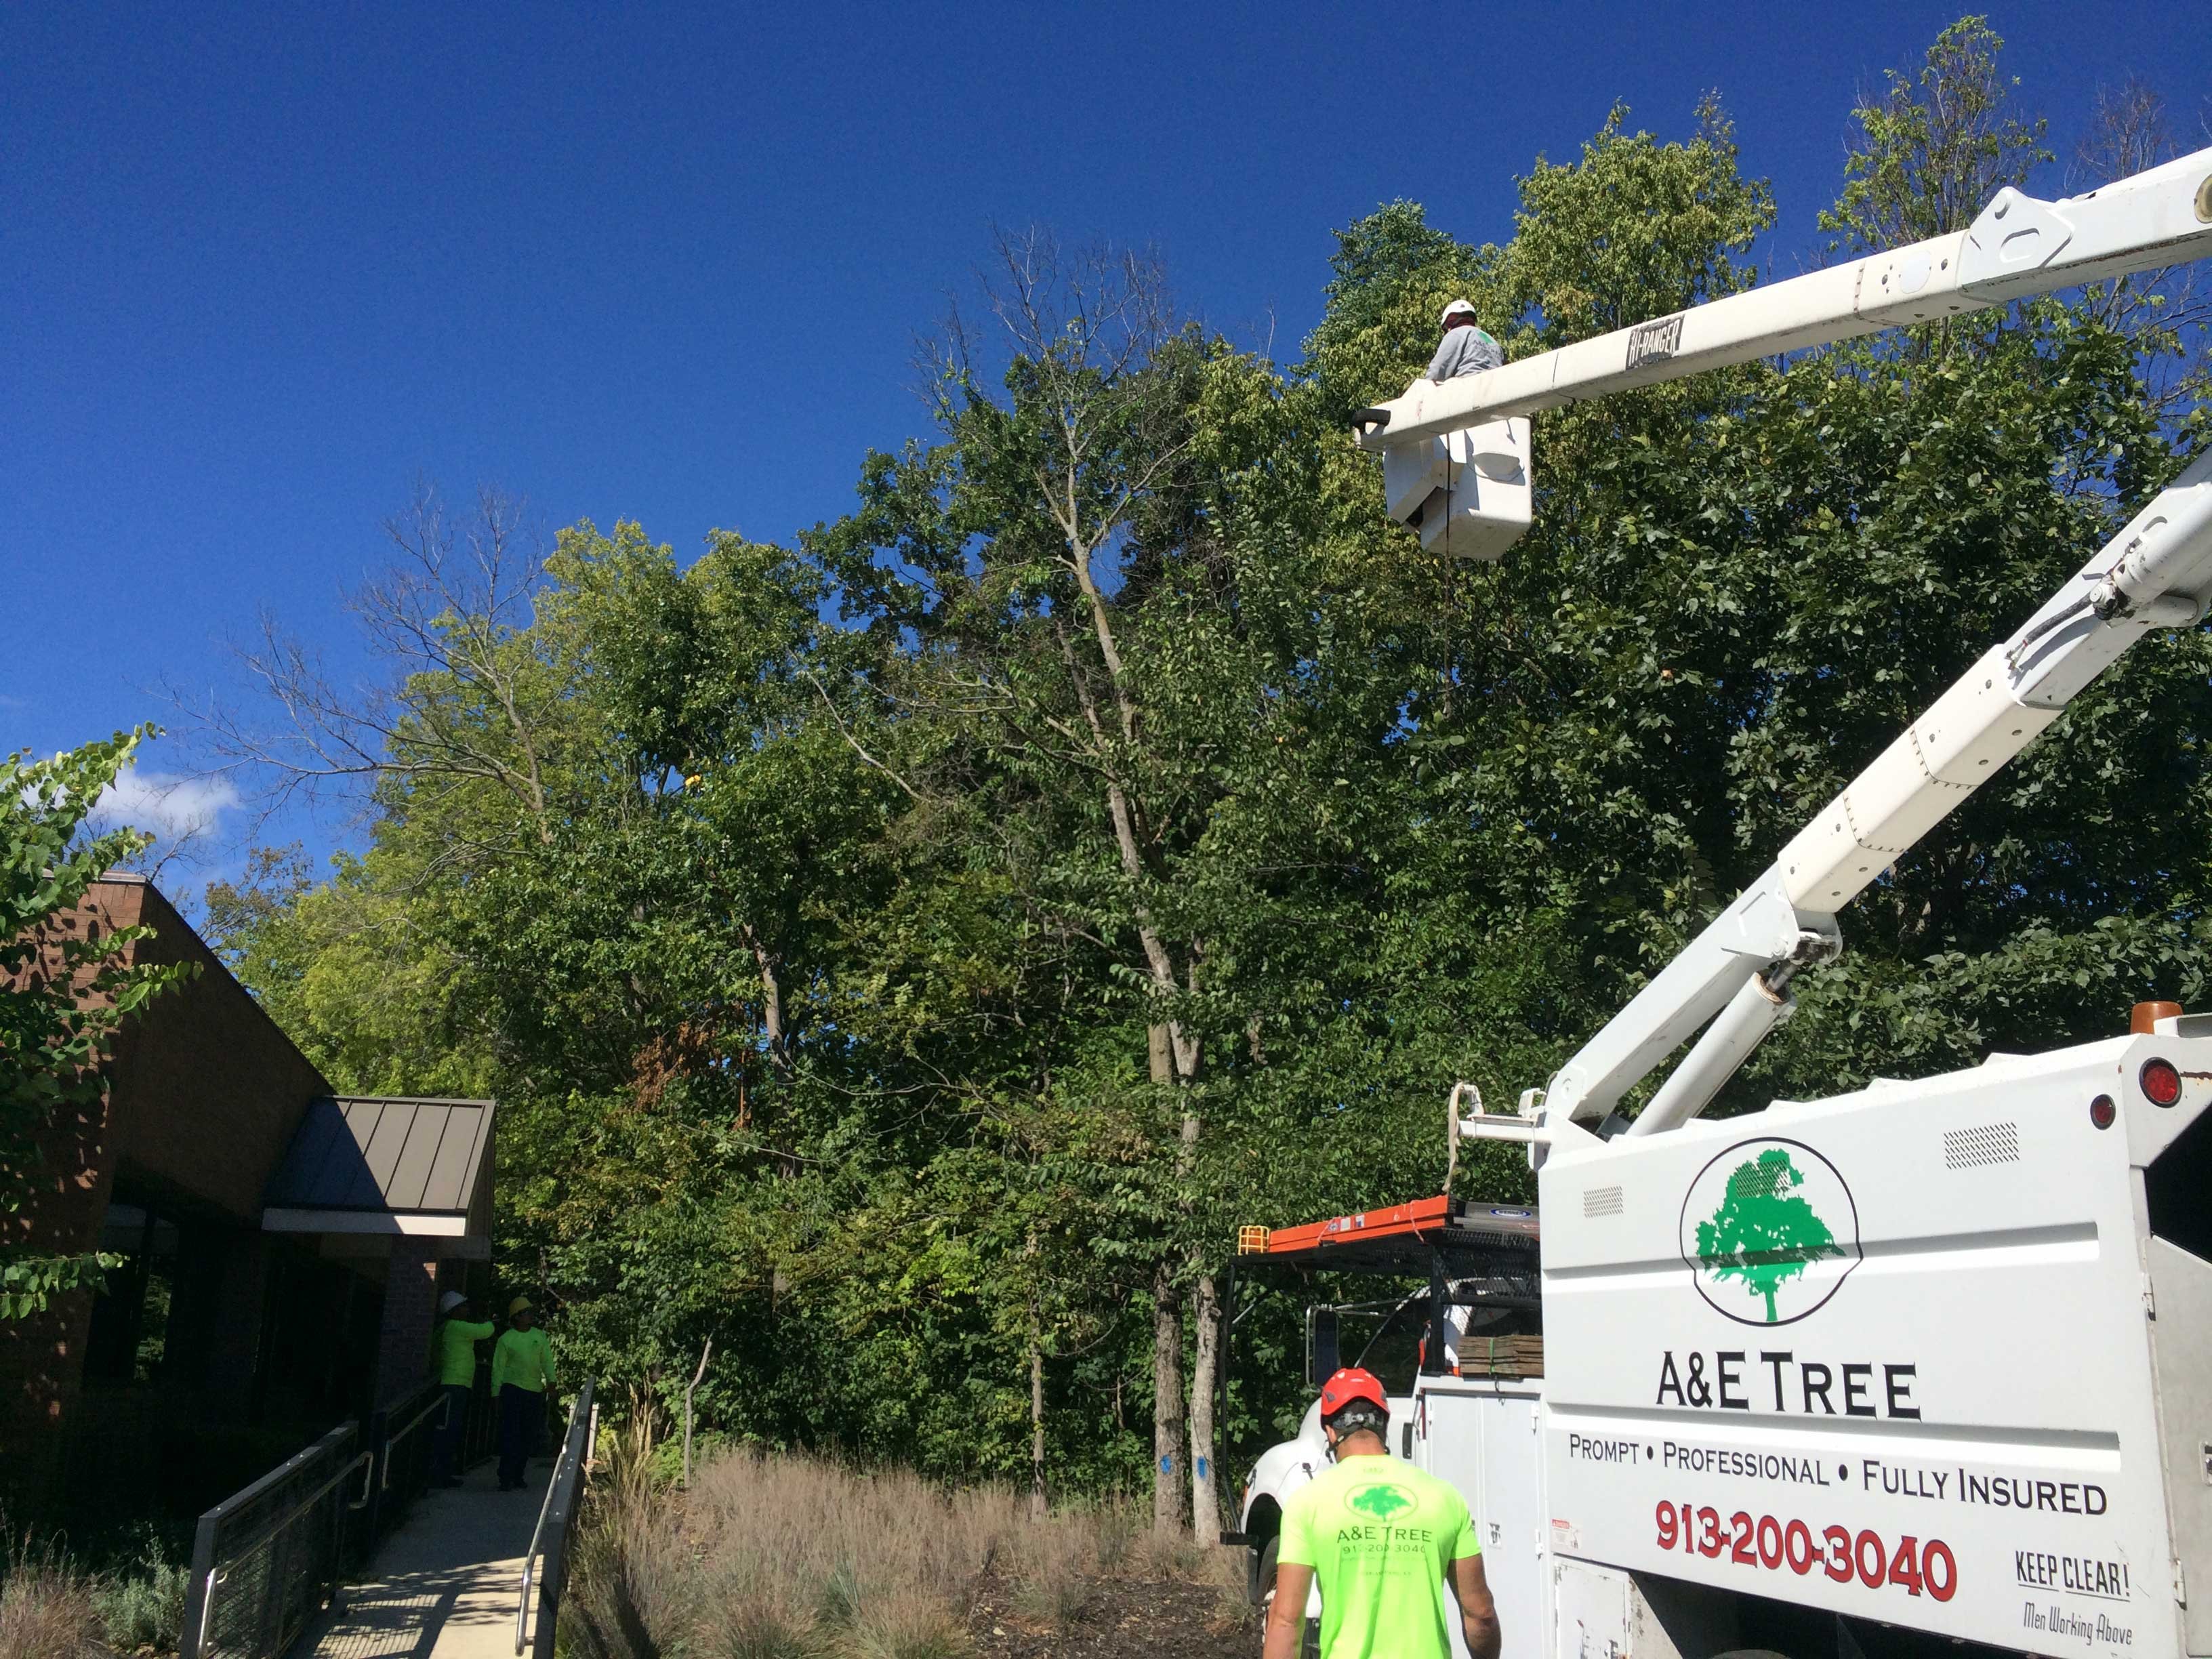 Kansas City Tree services